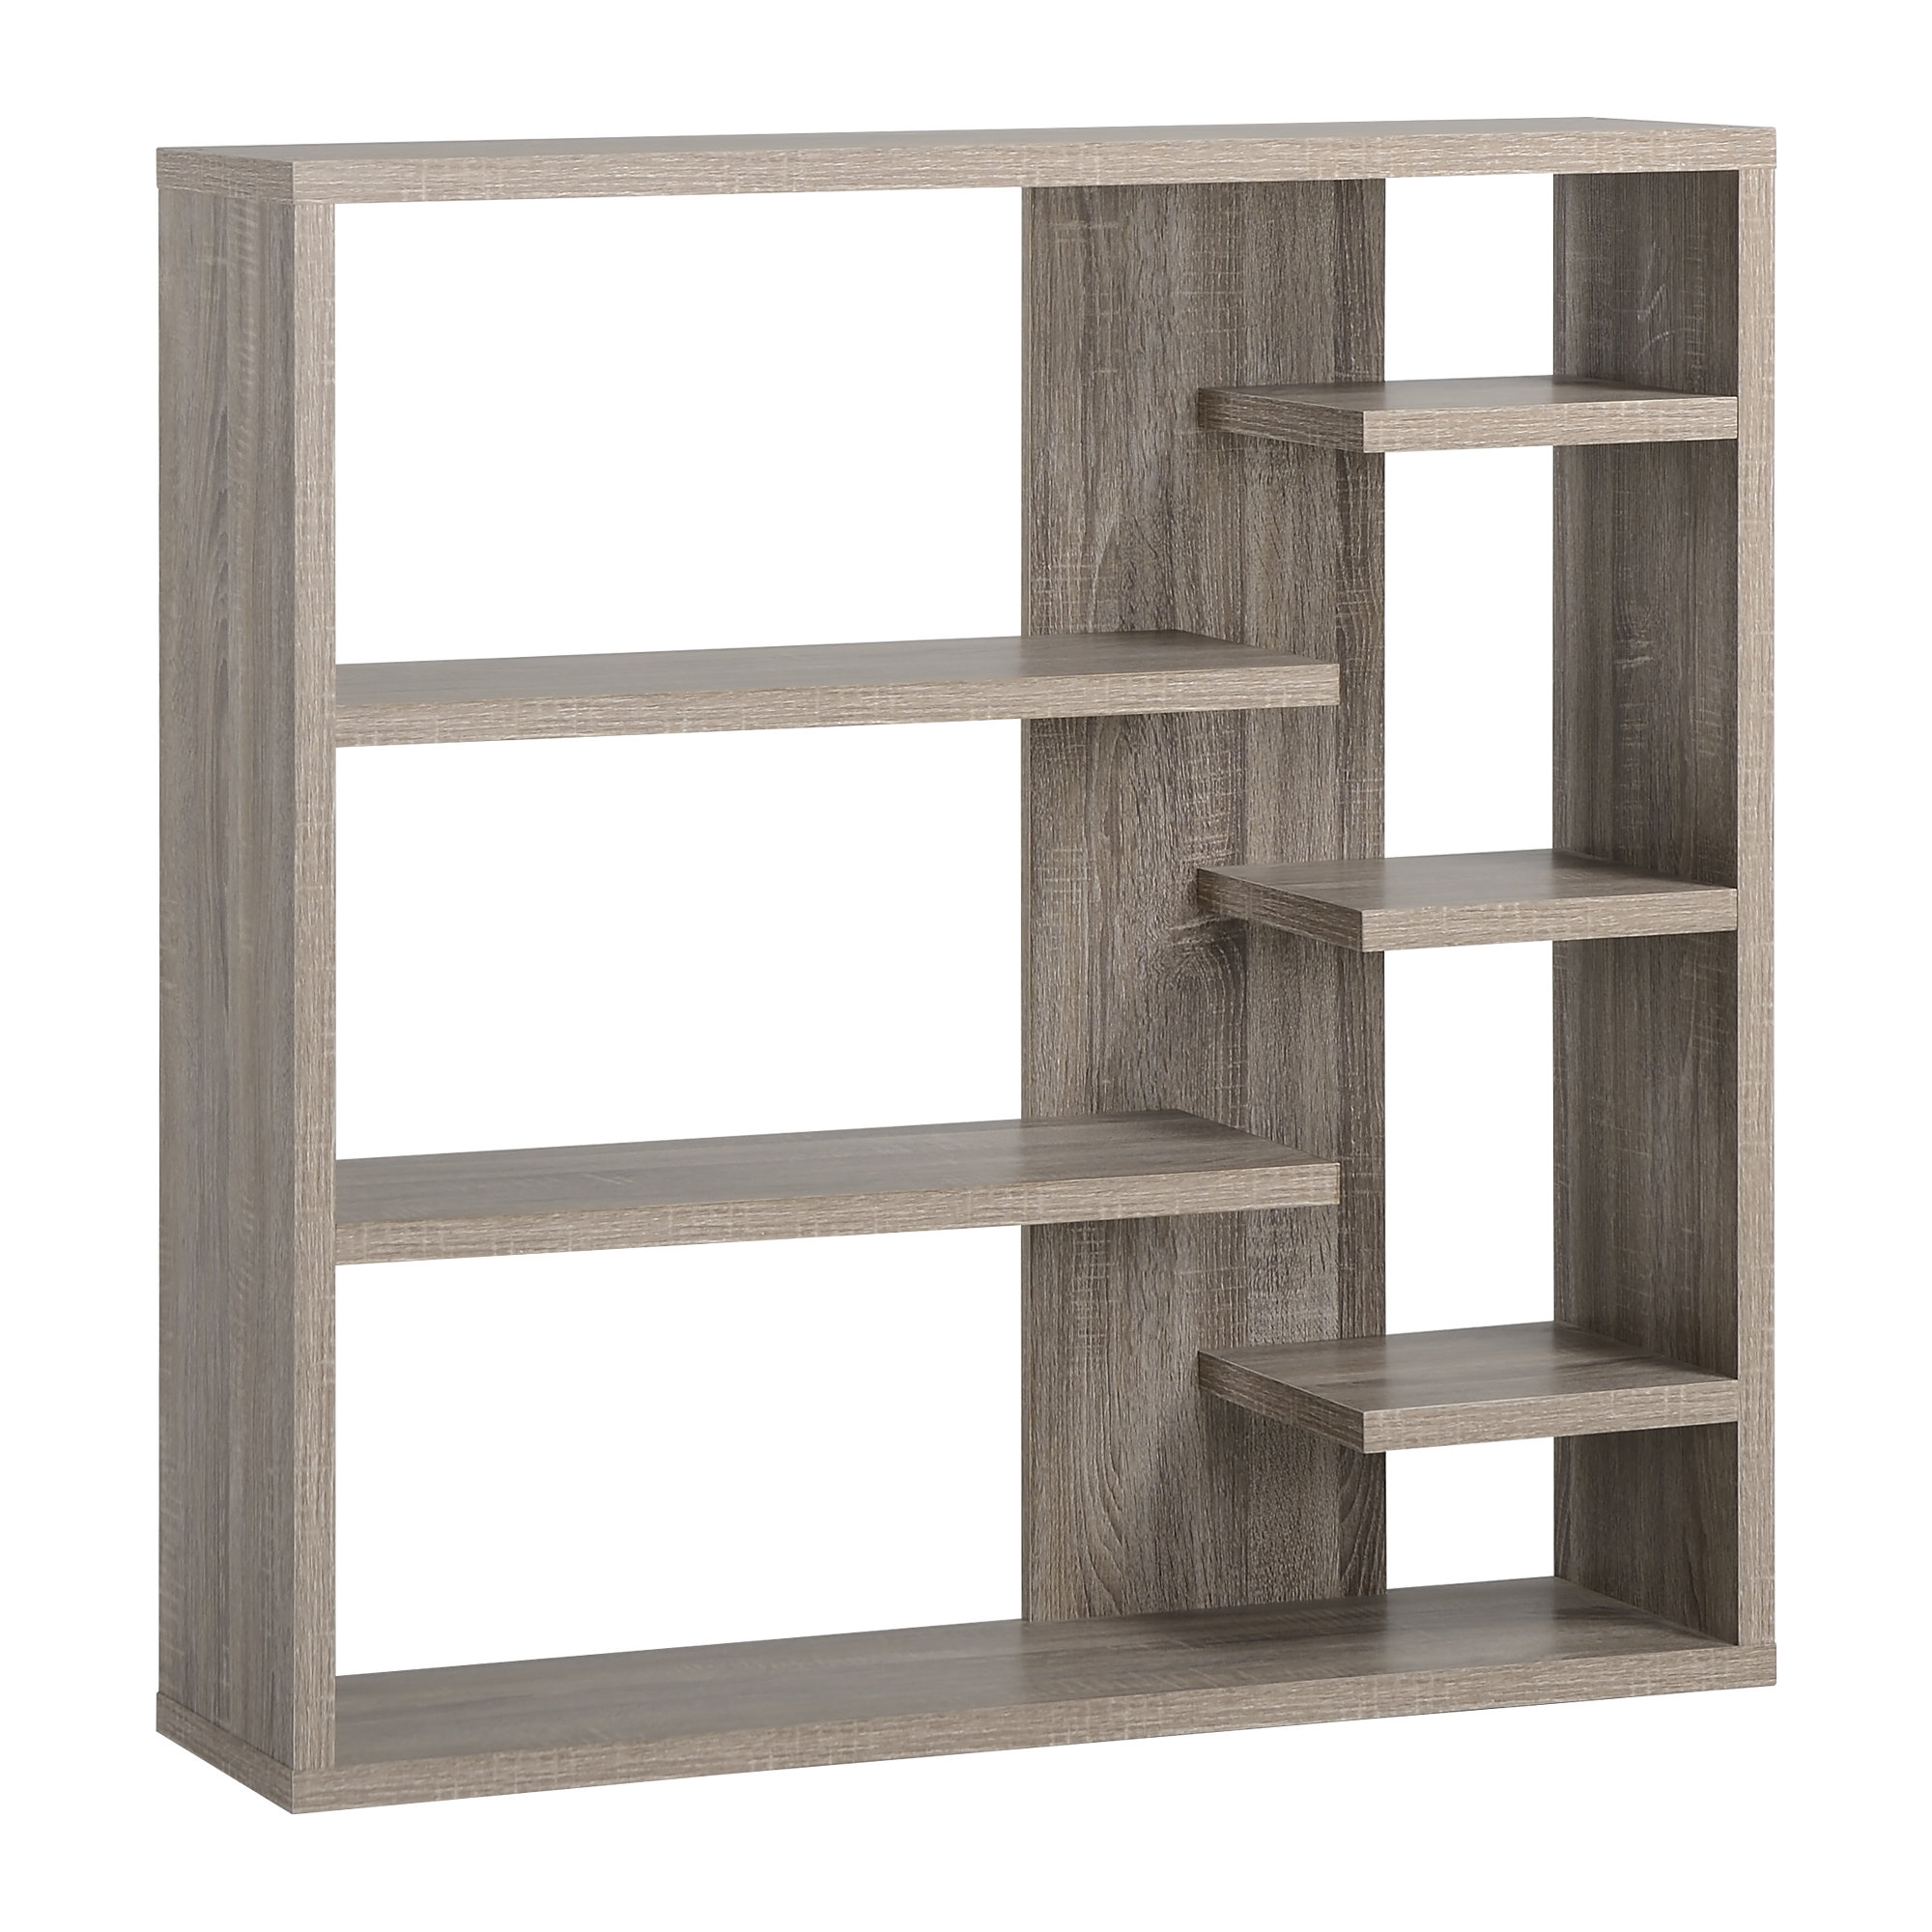 Fashionable Kiley Standard Bookcases Within Standard Bookcase (View 10 of 20)